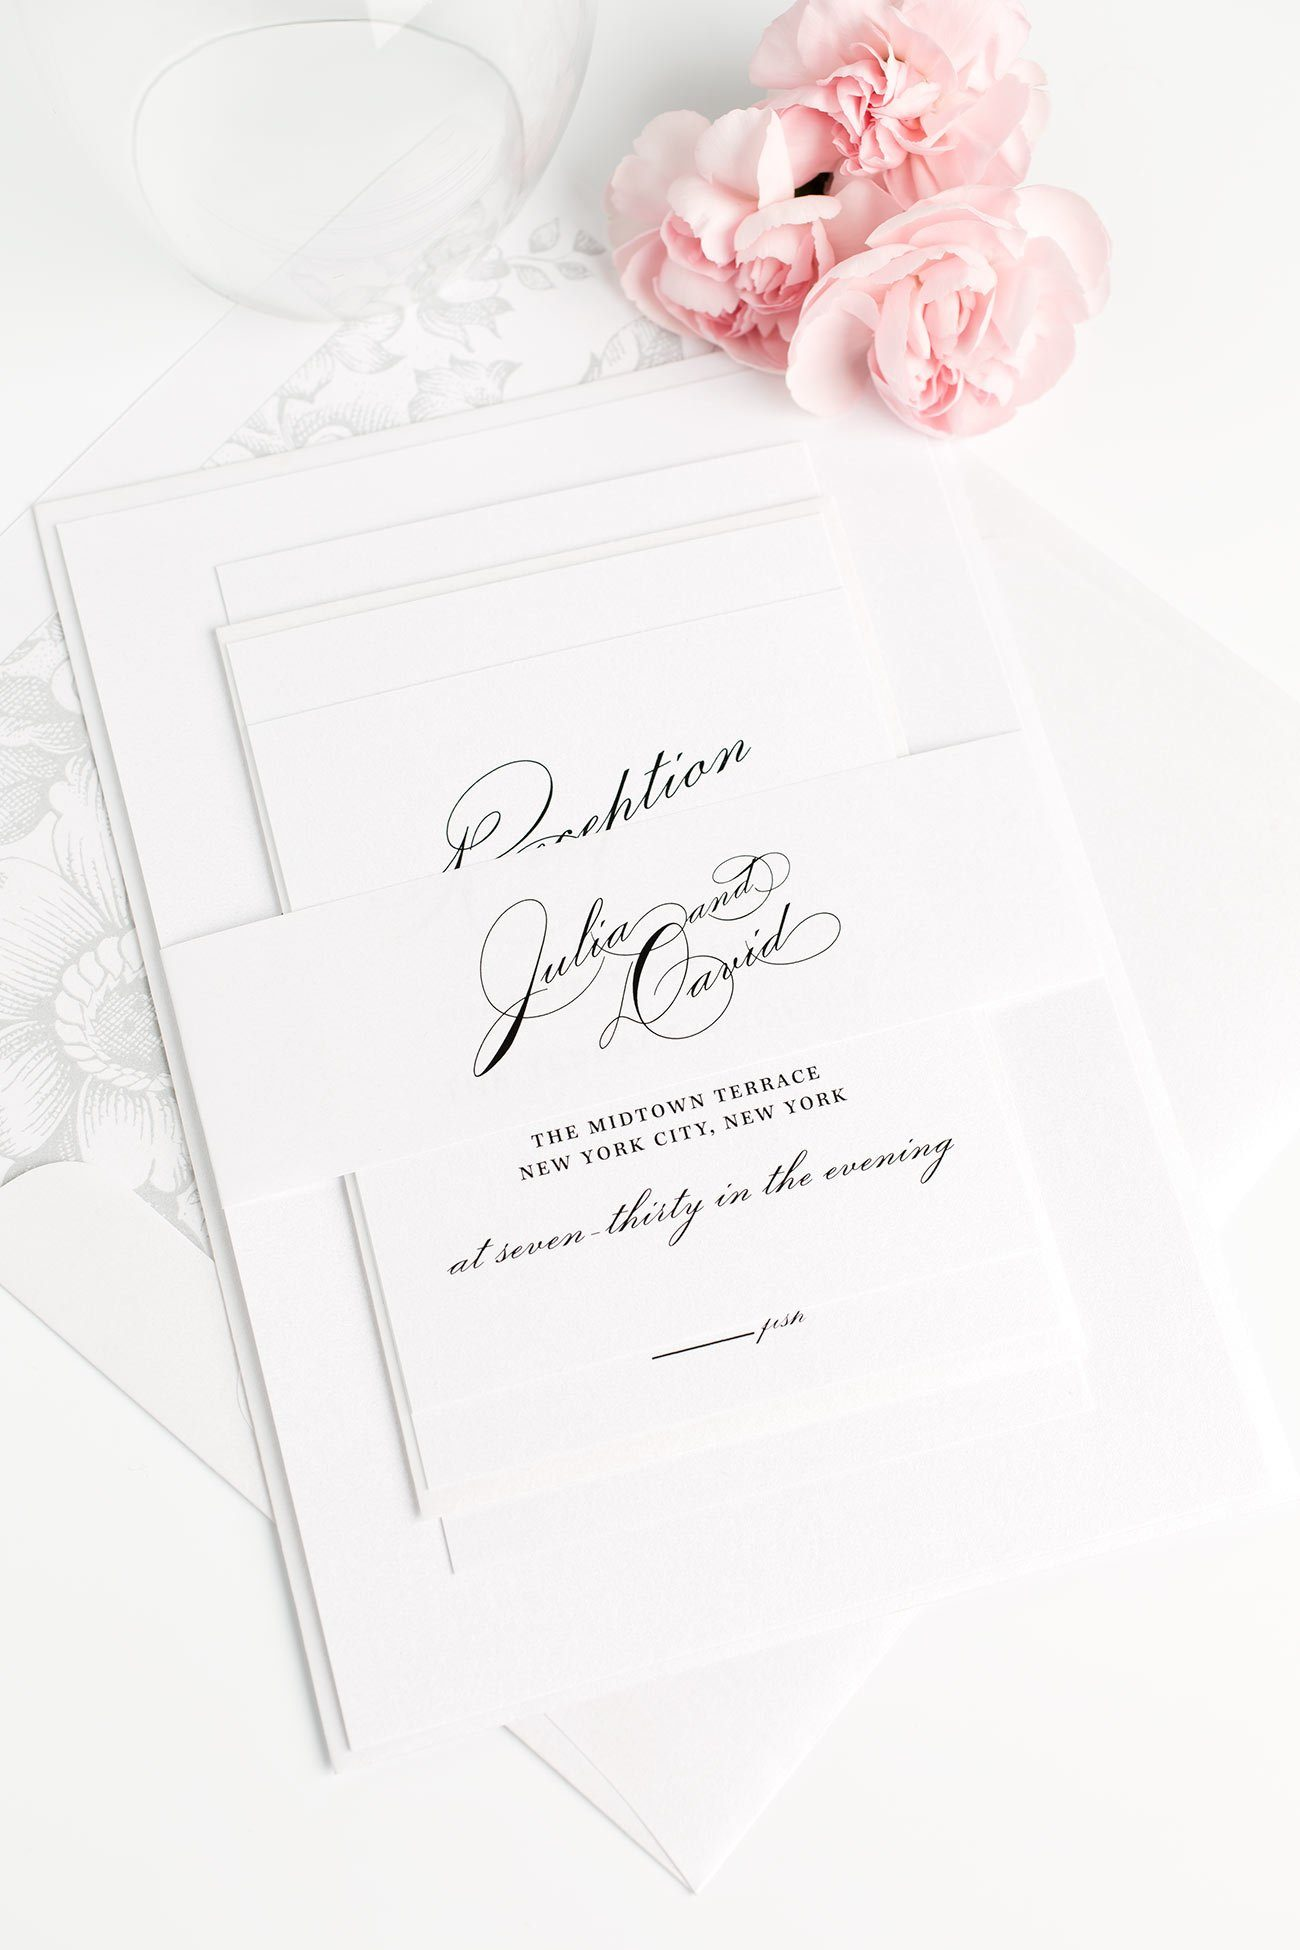 Vintage Wedding Invitations with gorgeous Calligraphy and a Floral Envelope Liner